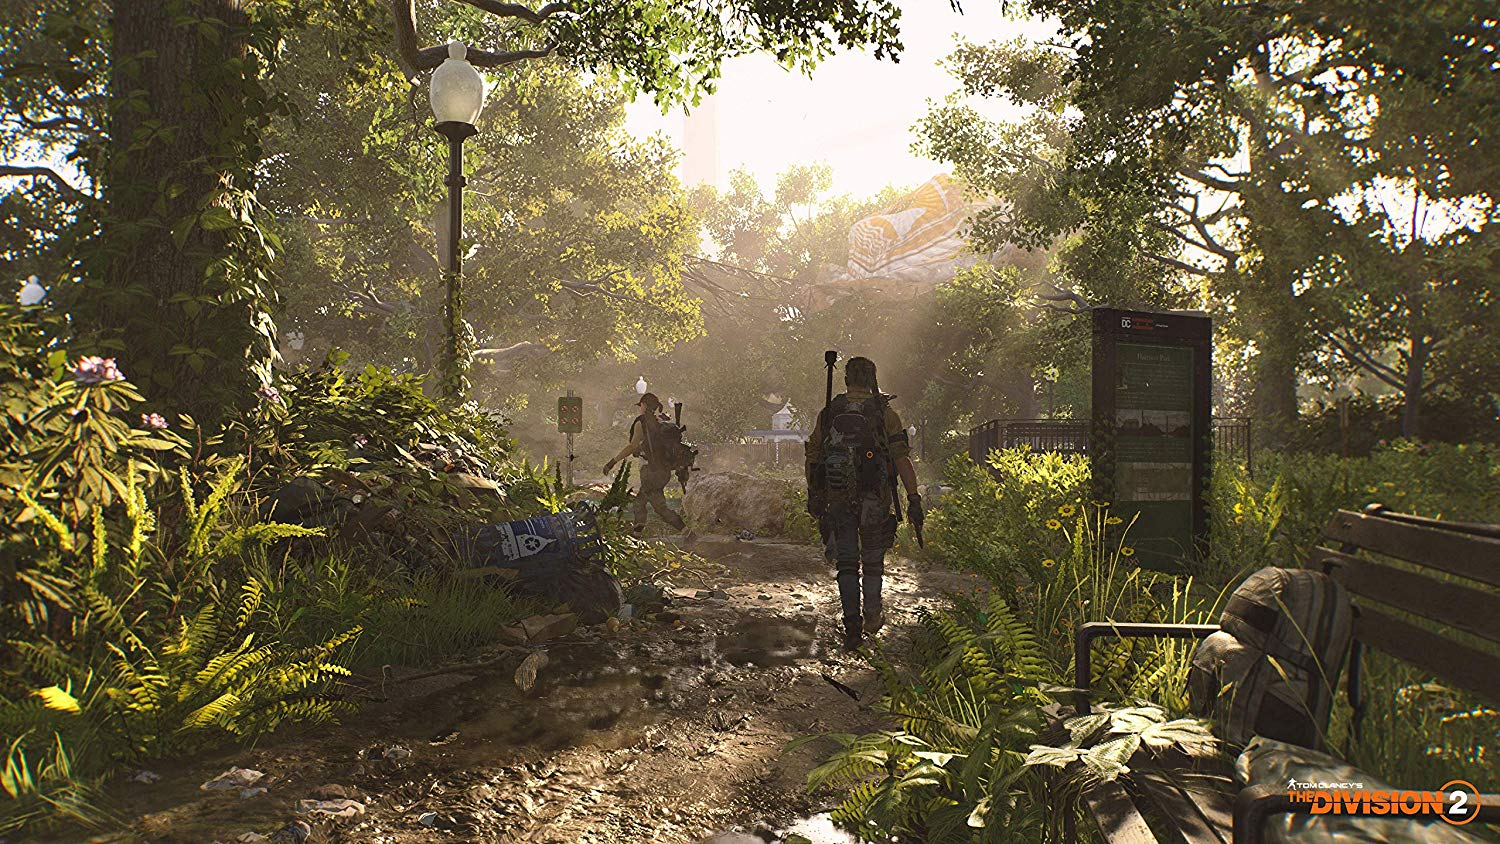 Image taken from the Division 2